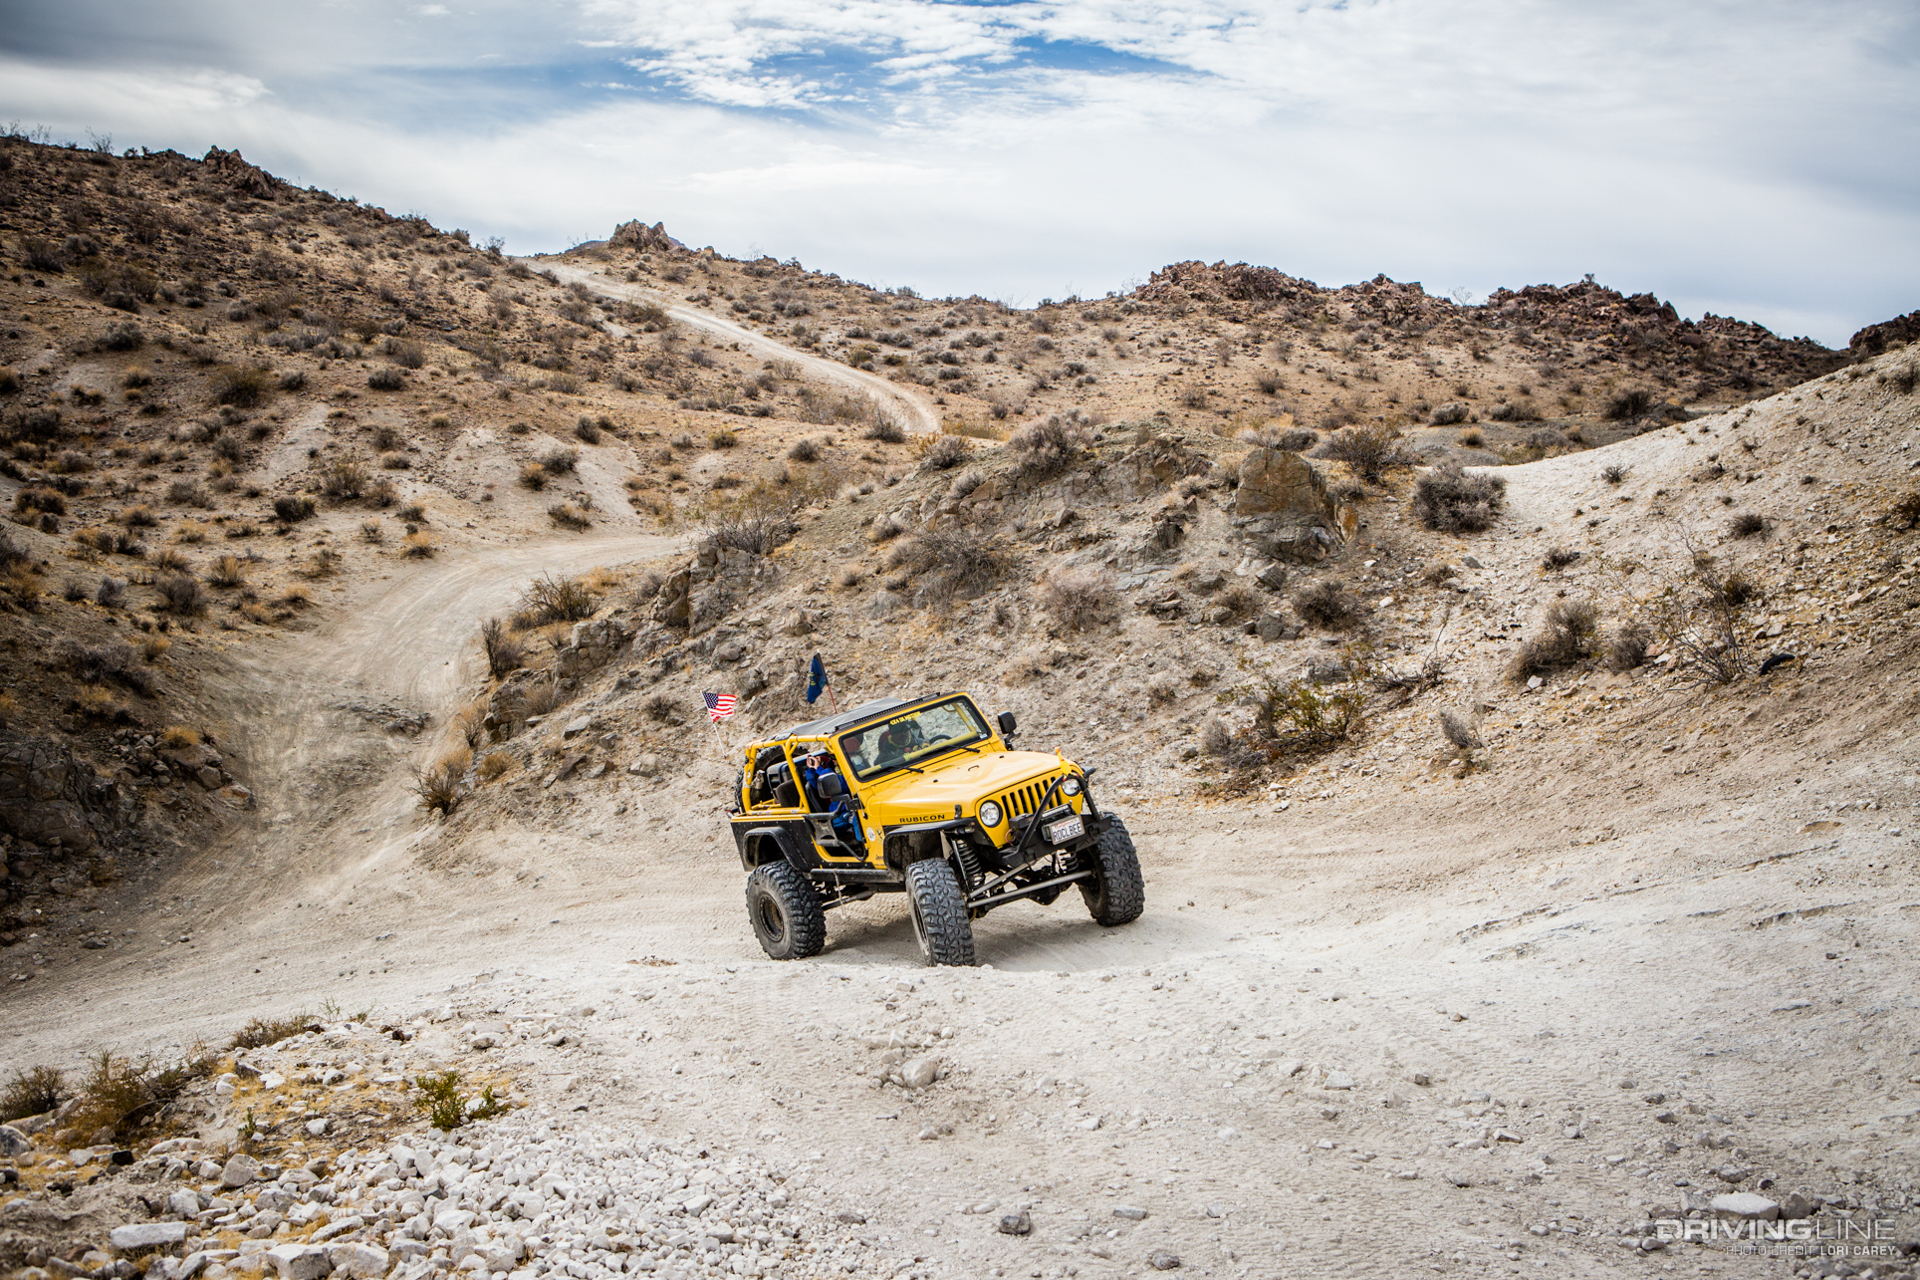 Panamint Valley Trail Review: Helter Skelter in Death ...